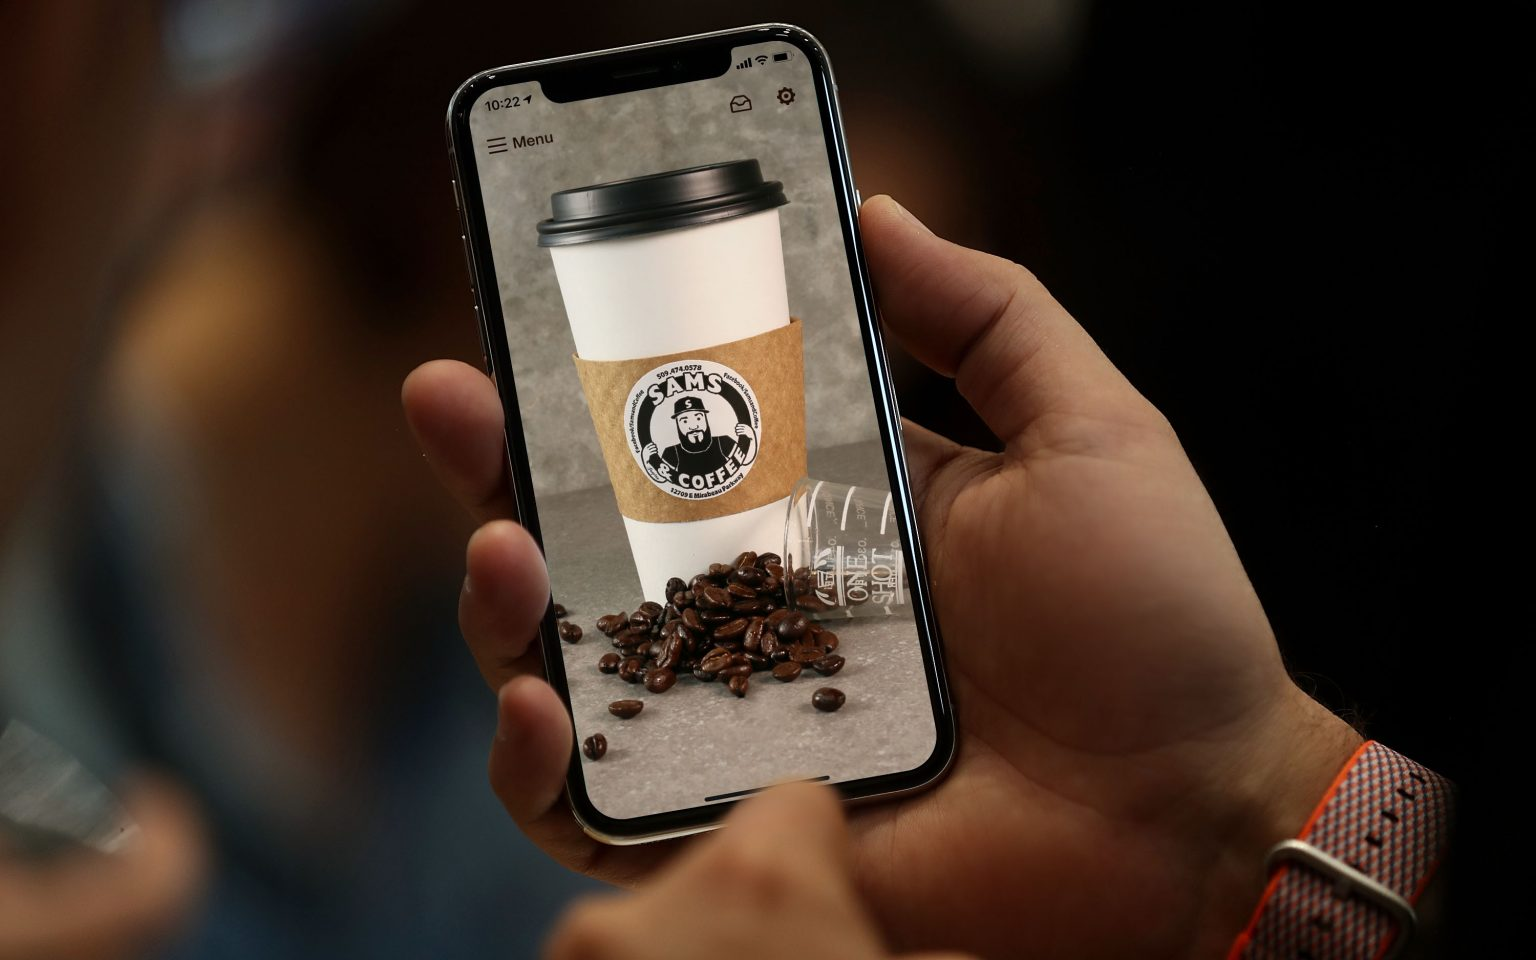 Sam's and Coffee Mobile App